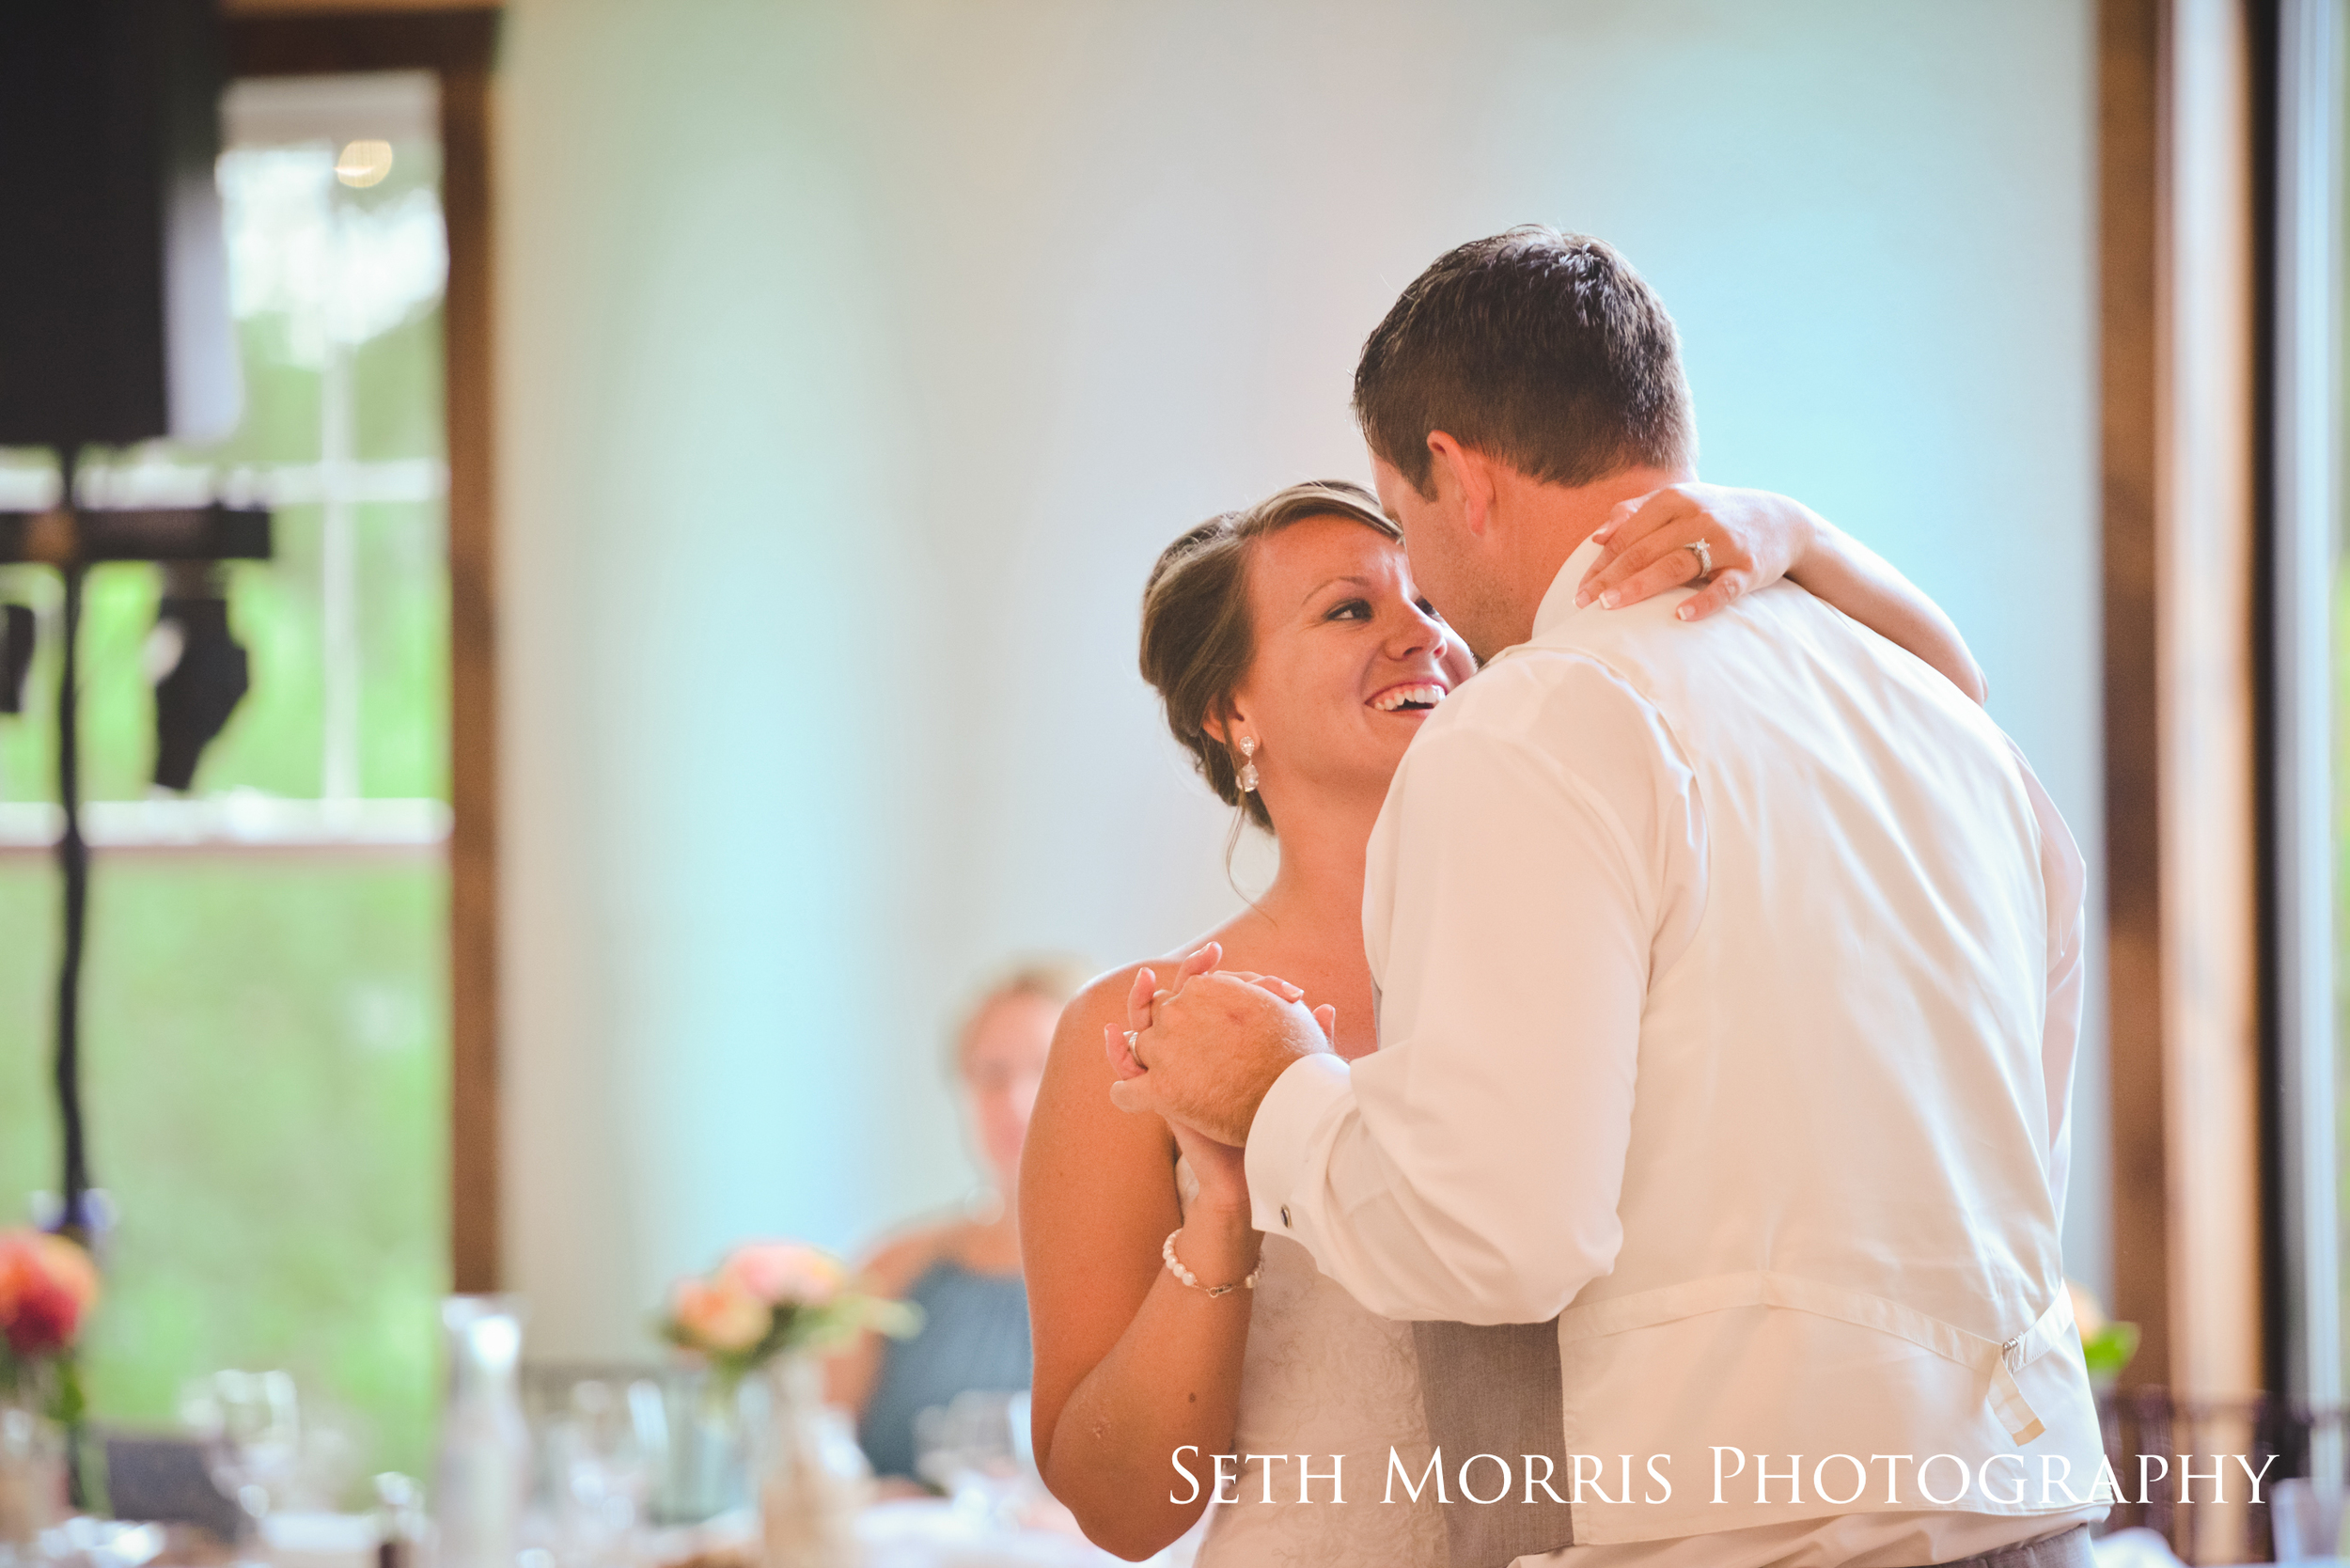 hornbaker-barn-wedding-photo-princeton-photographer-67.jpg